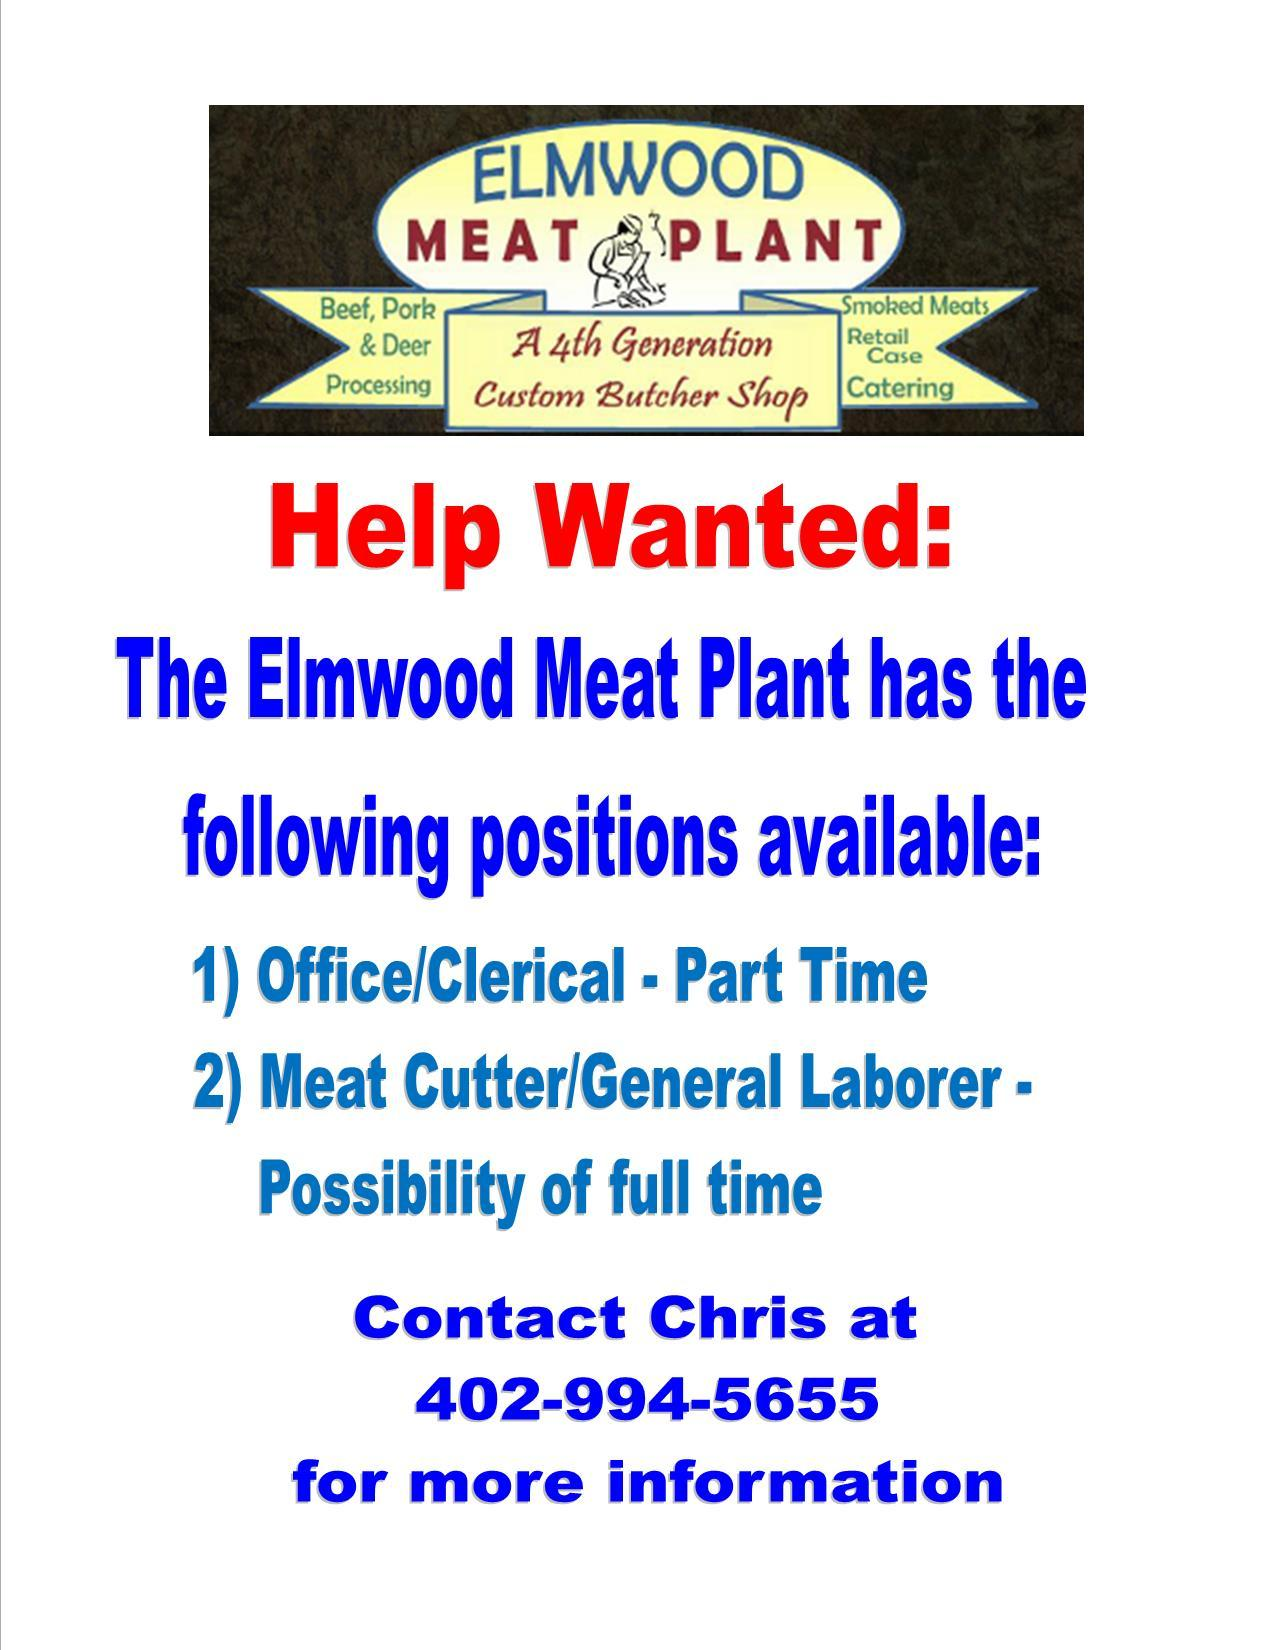 Elmwood Meat Plant